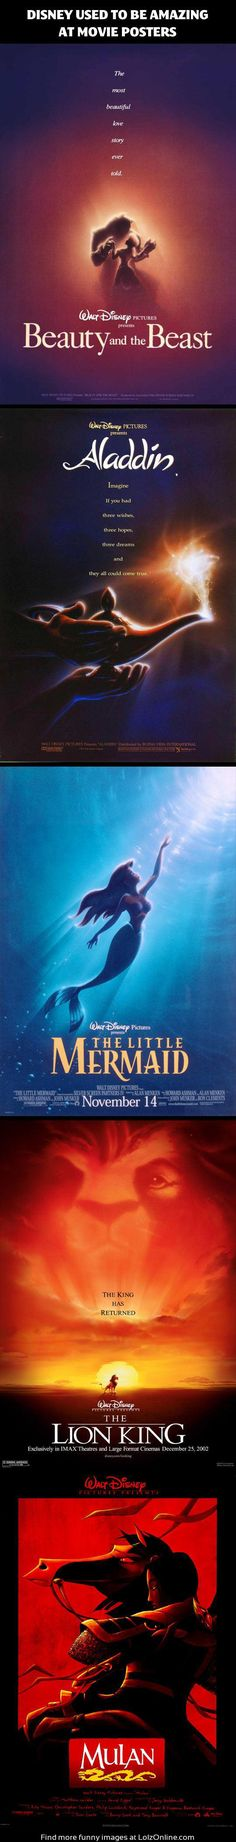 Disney used to be amazing at movie posters...